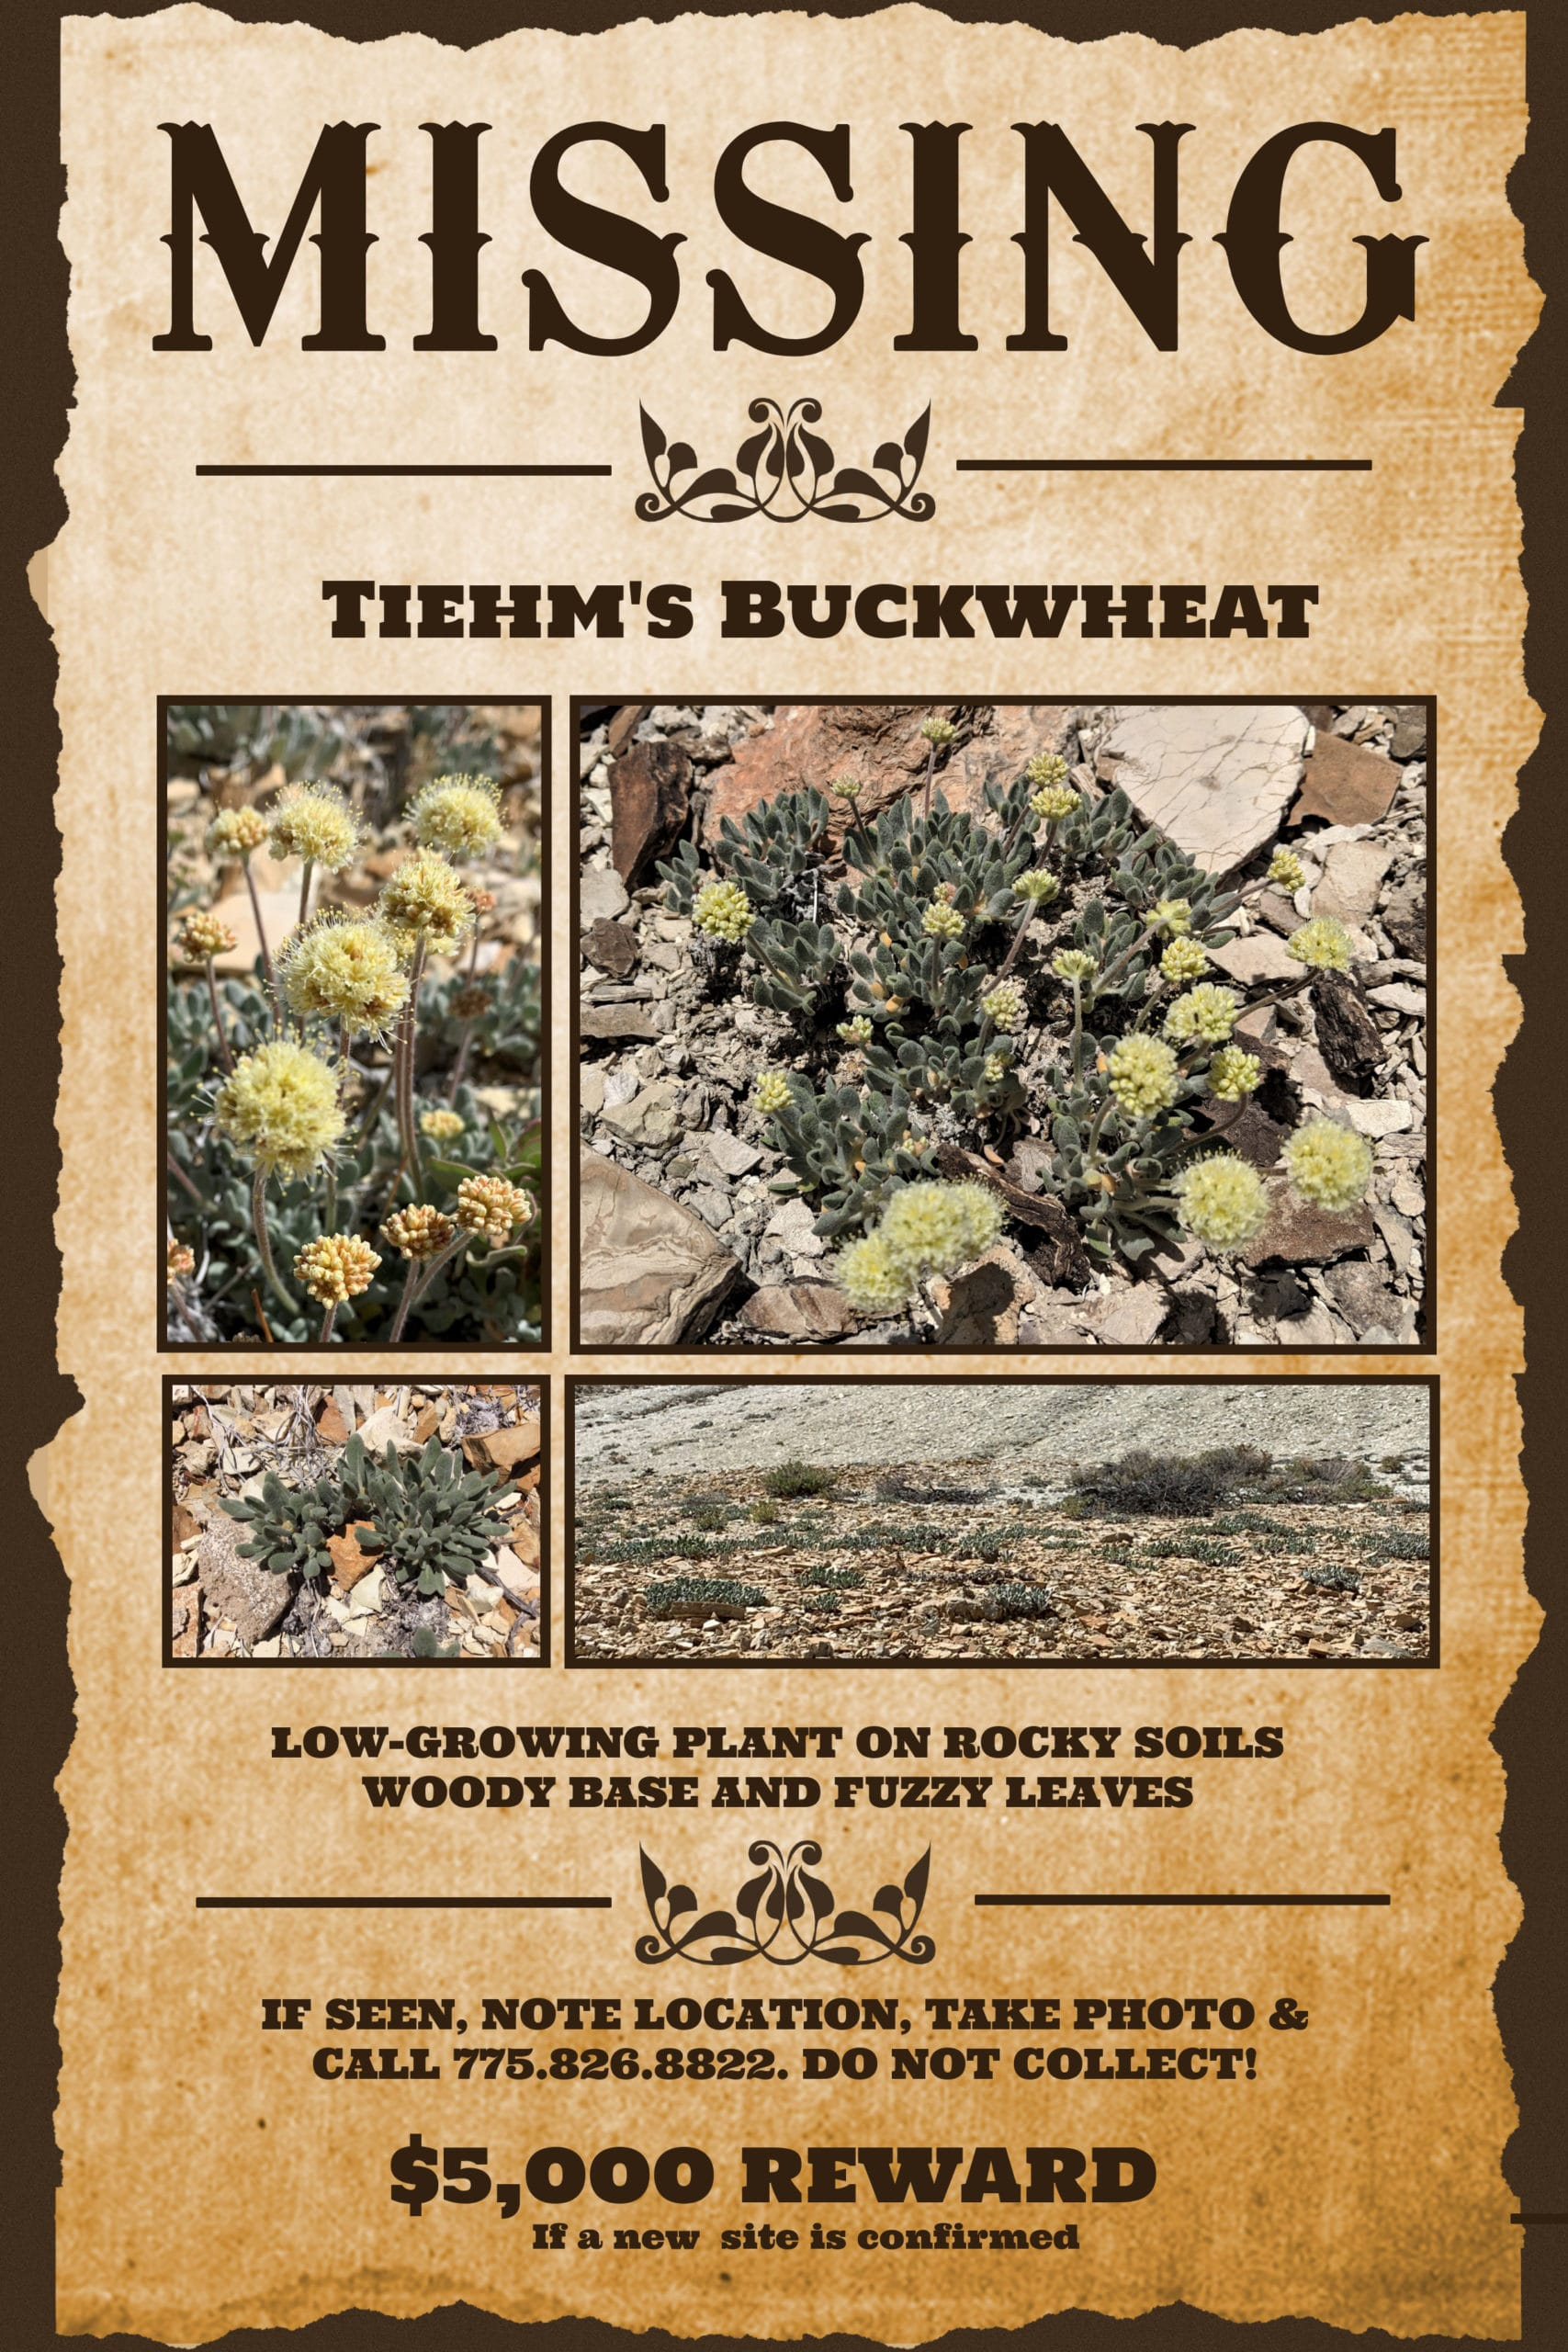 Ioneer is offering a $5,000 Reward for the discovery of Tiehm's buckwheat.